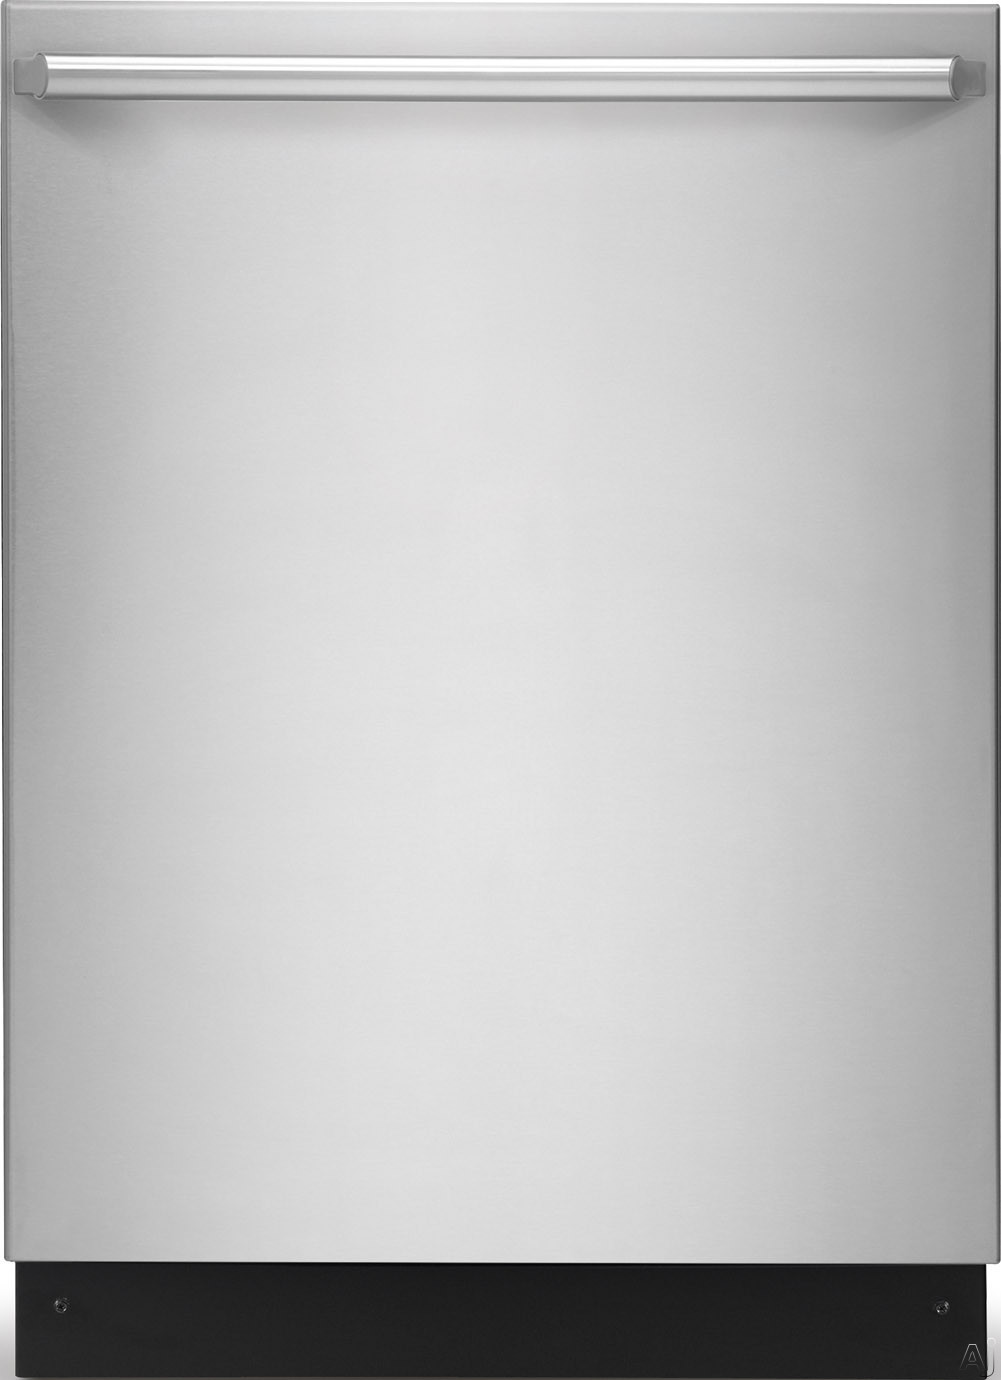 Electrolux IQ-Touch Series EI24ID30Q Fully Integrated Dishwasher with 14-Place Settings, 9 Wash Cycles, SatelliteSpray Arm, IQ Touch Controls, Leak Detection System, Luxury-Glide Racks and Energy Star Qualified EI24ID30Q